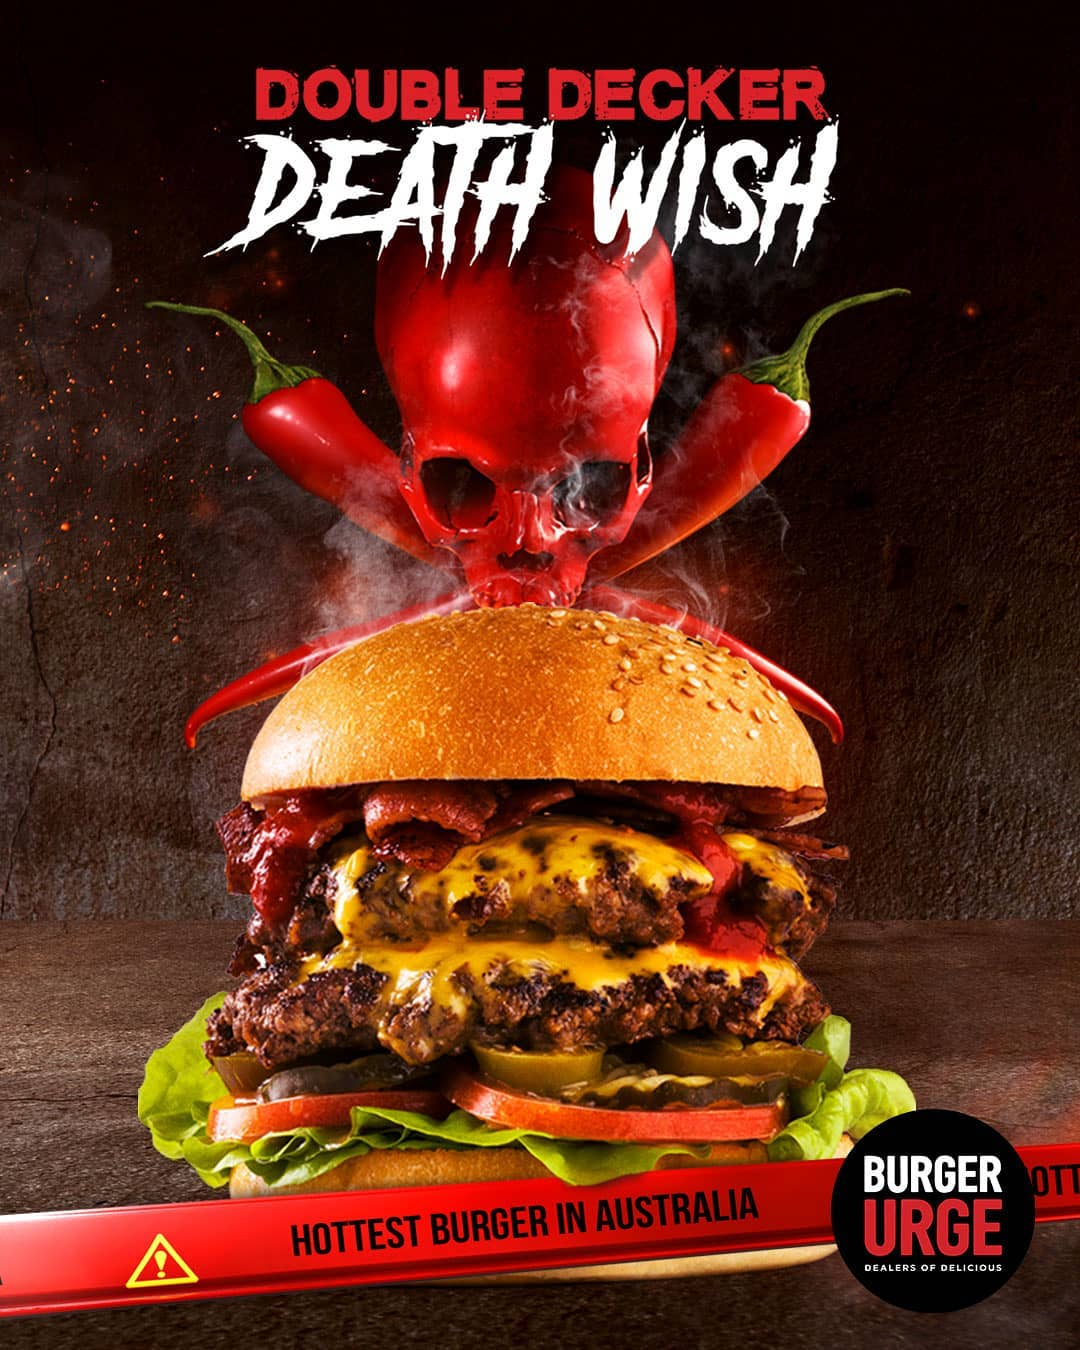 Double Decker Death Wish Burger from Australia